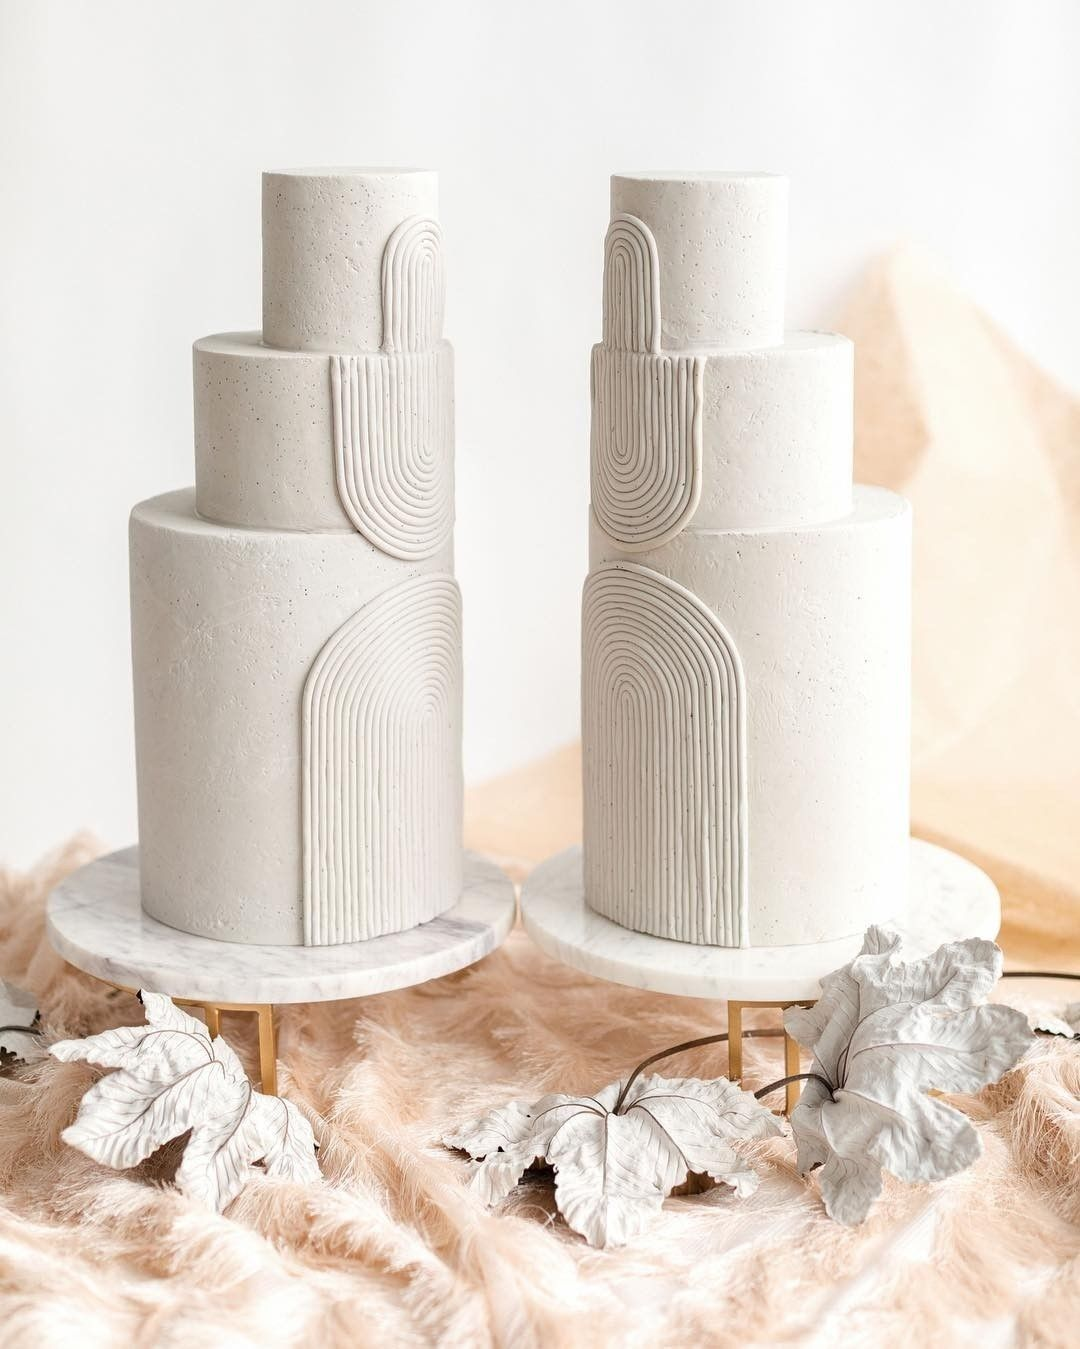 two cakes with white arches